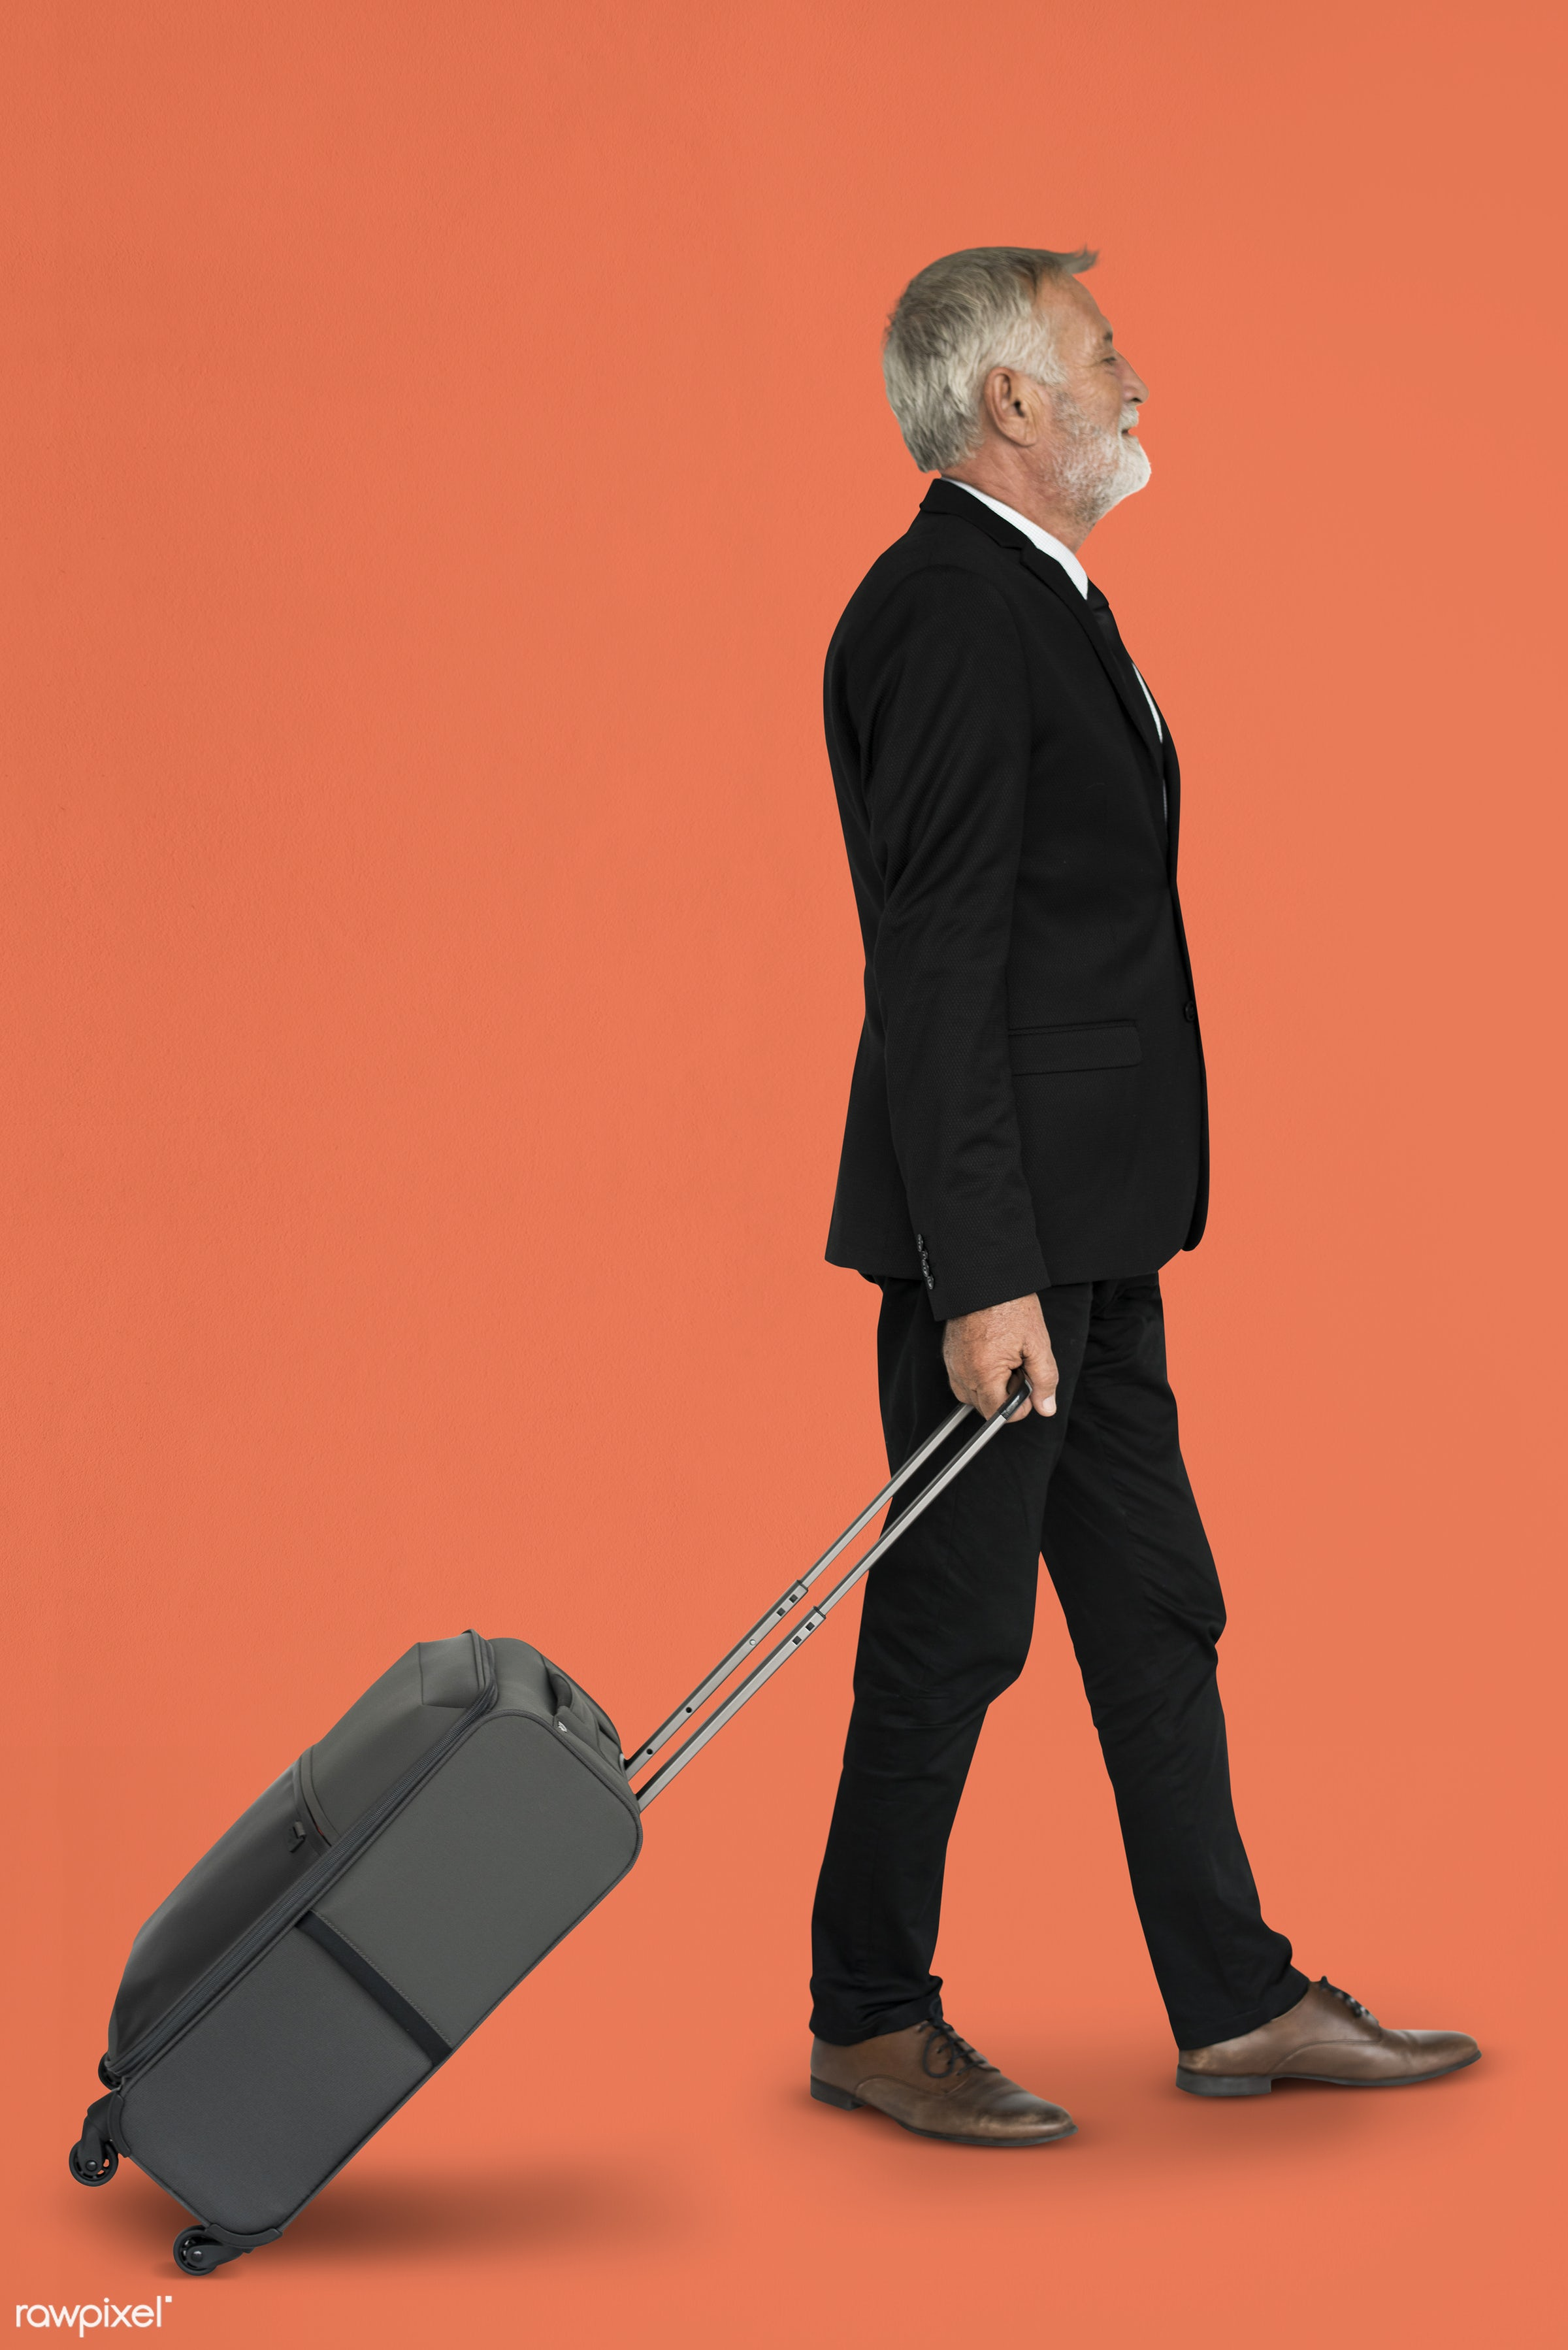 studio, face, person, travel, people, business, businessman, trip, man, orange, isolated, suitcase, male, traveler, business...